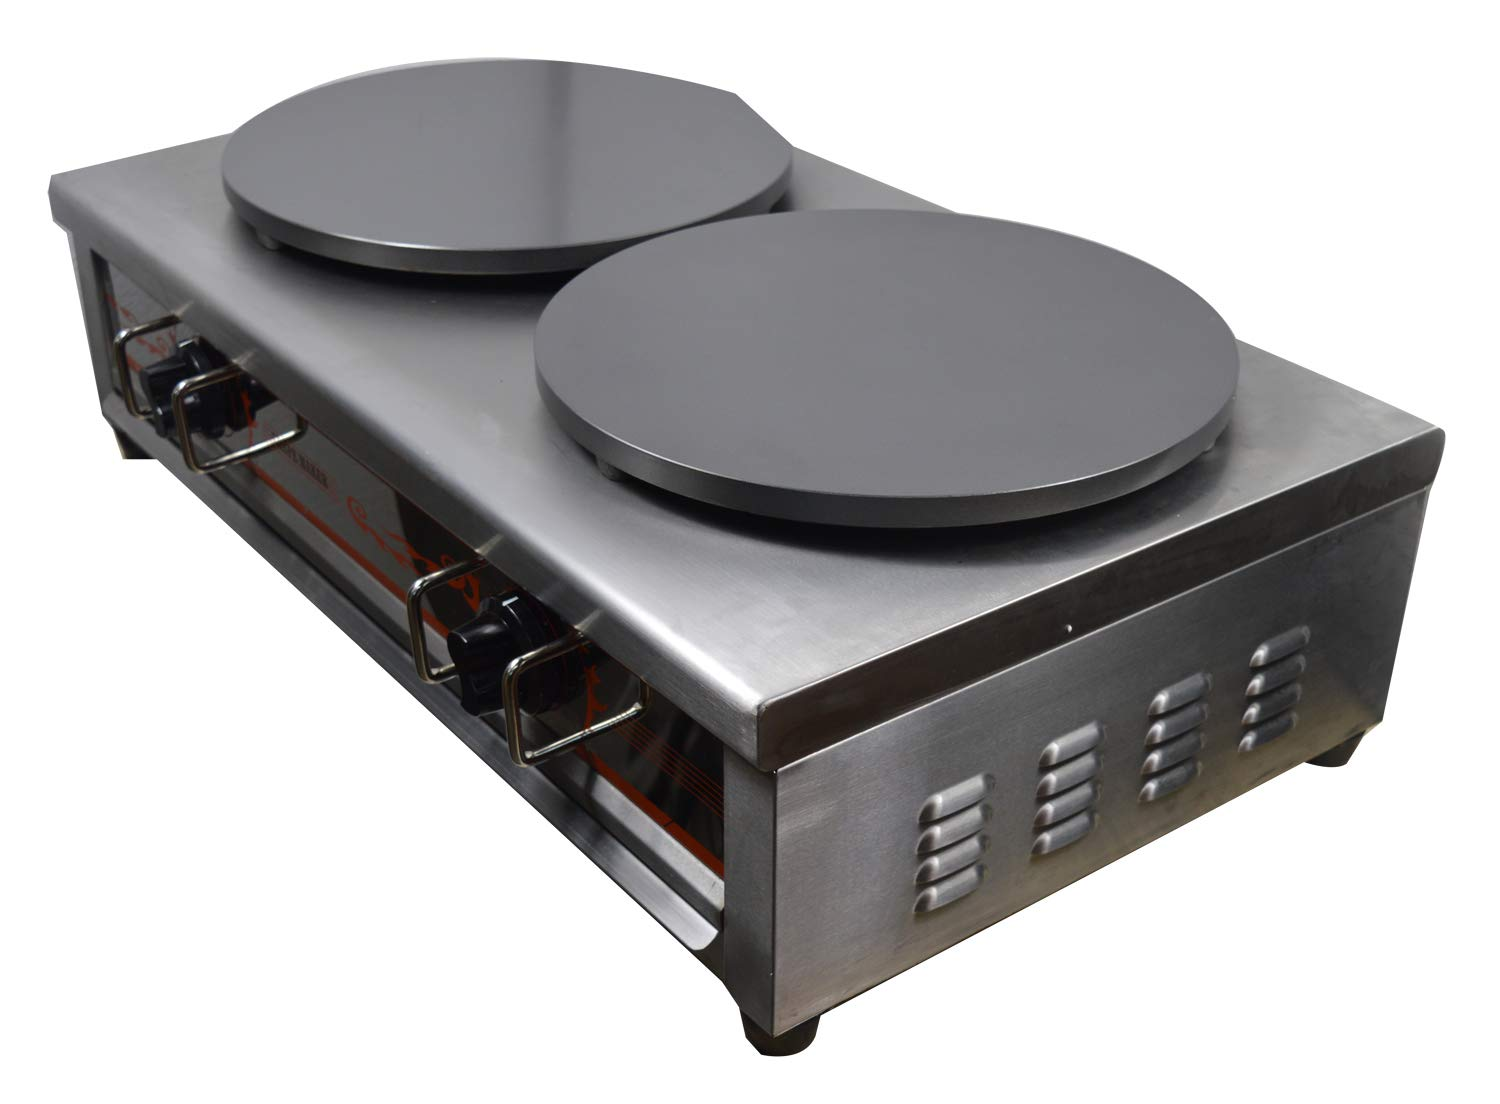 Intbuying Natural Gas Double Crepe Maker and Pancake Machine #134032